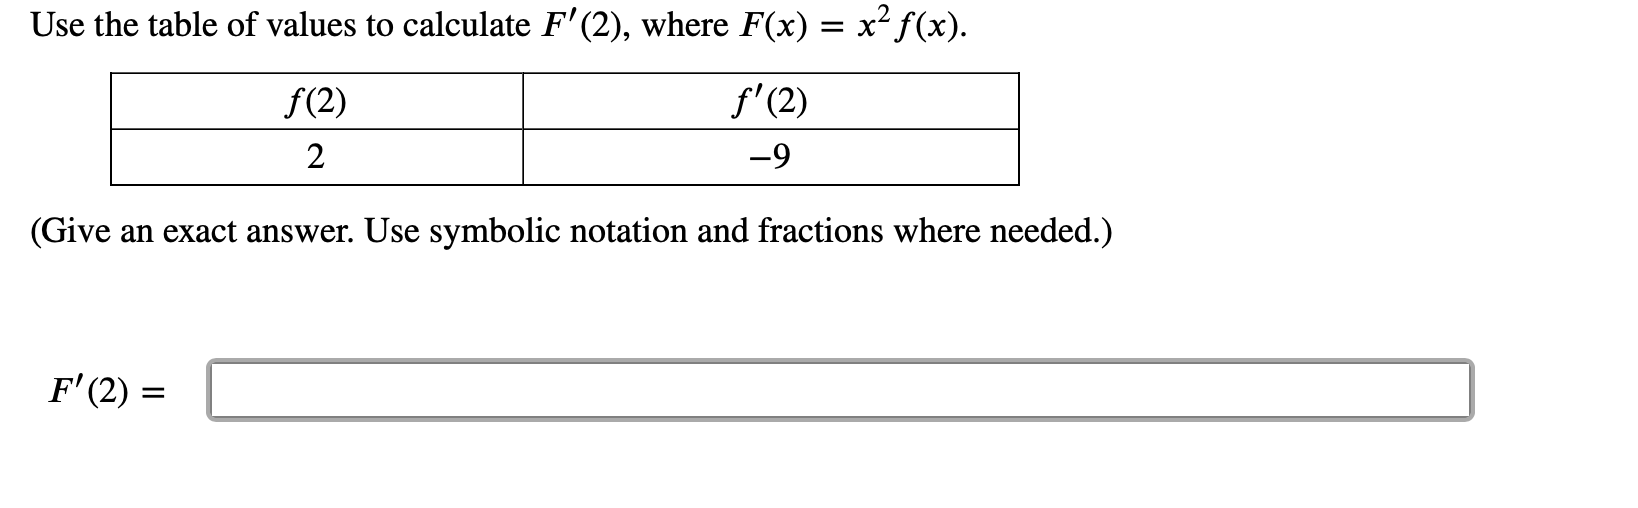 Use the table of values to calculate F'(2), where F(x) = x2f(x) f'(2) f(2) 2 -9 (Give an exact answer. Use symbolic notation and fractions where needed.) F'(2)